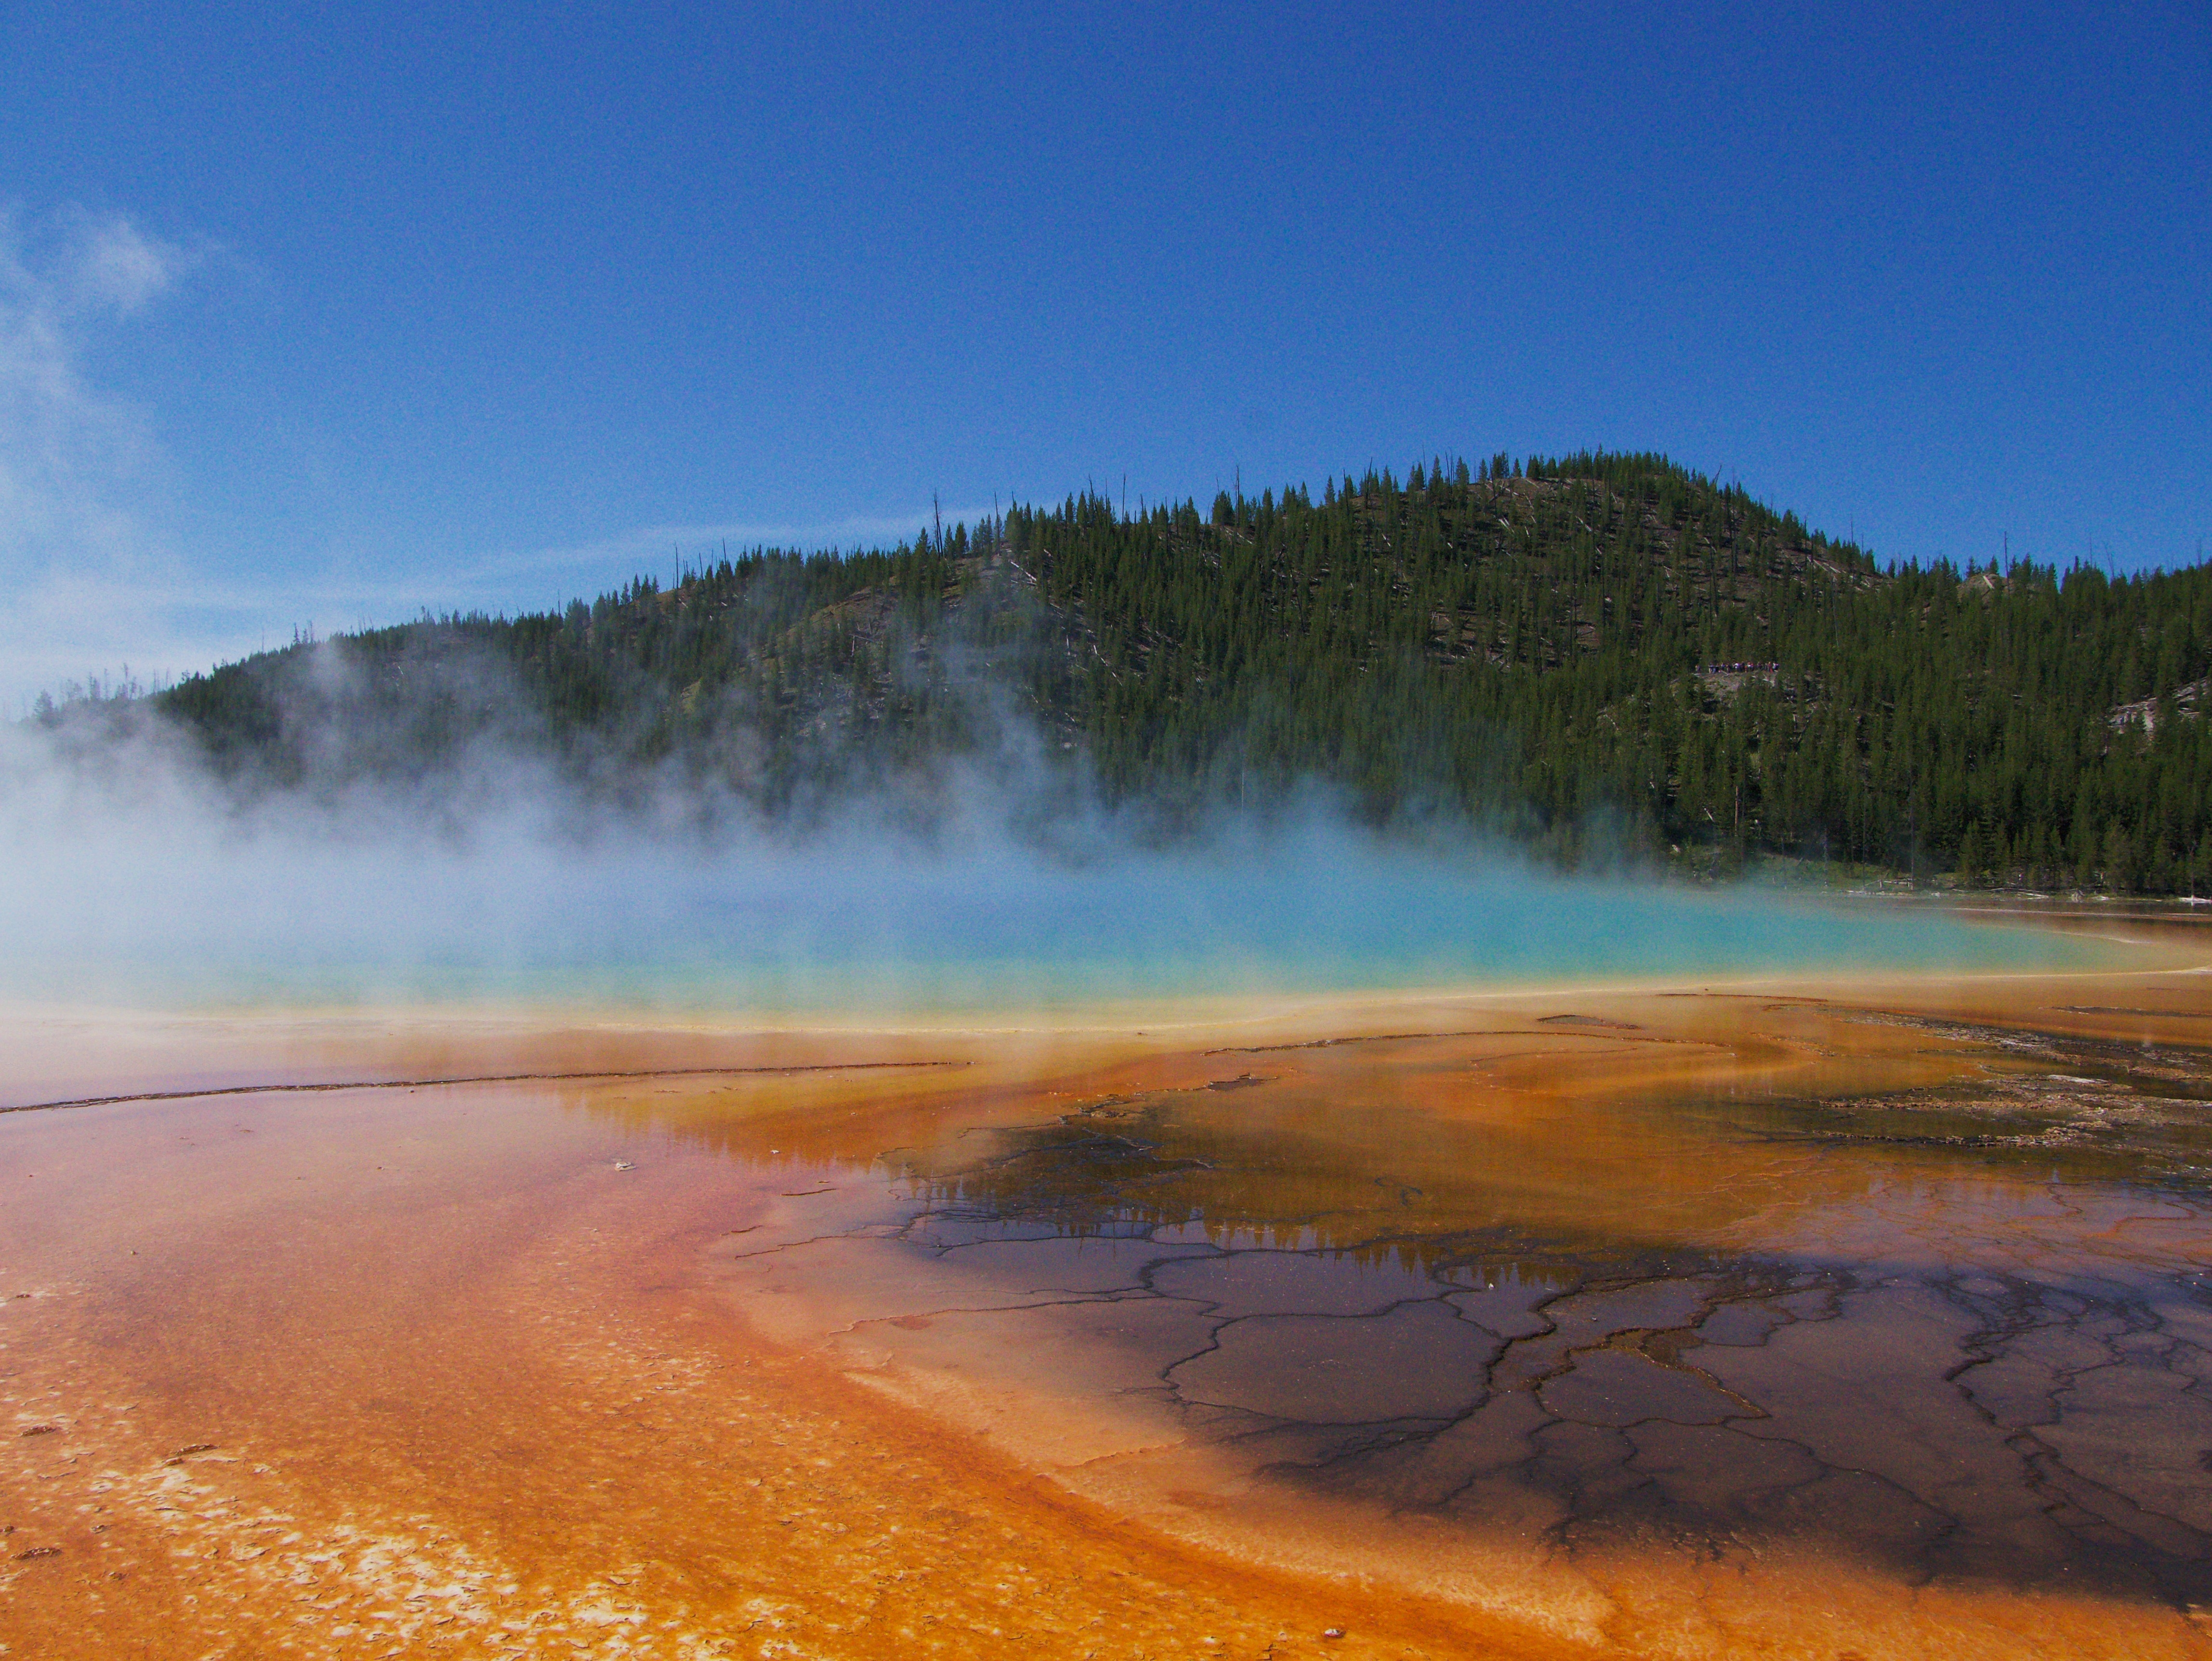 Grand Prismatic Spring, Yellowstone National Park, WY [OC